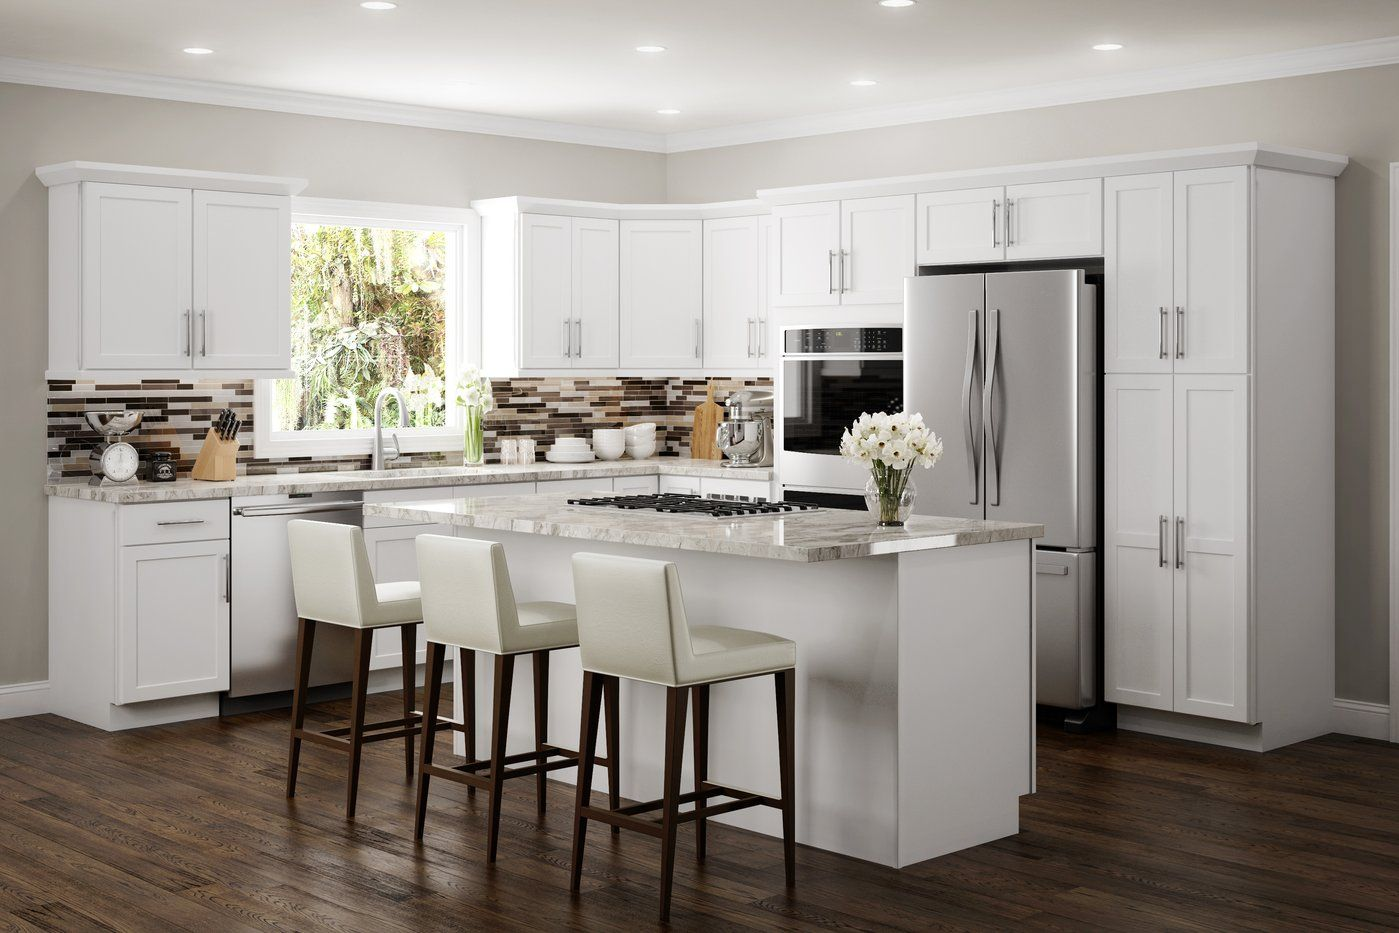 Wholesale Cabinet Supply In 2020 Assembled Kitchen Cabinets Used Kitchen Cabinets Rta Kitchen Cabinets